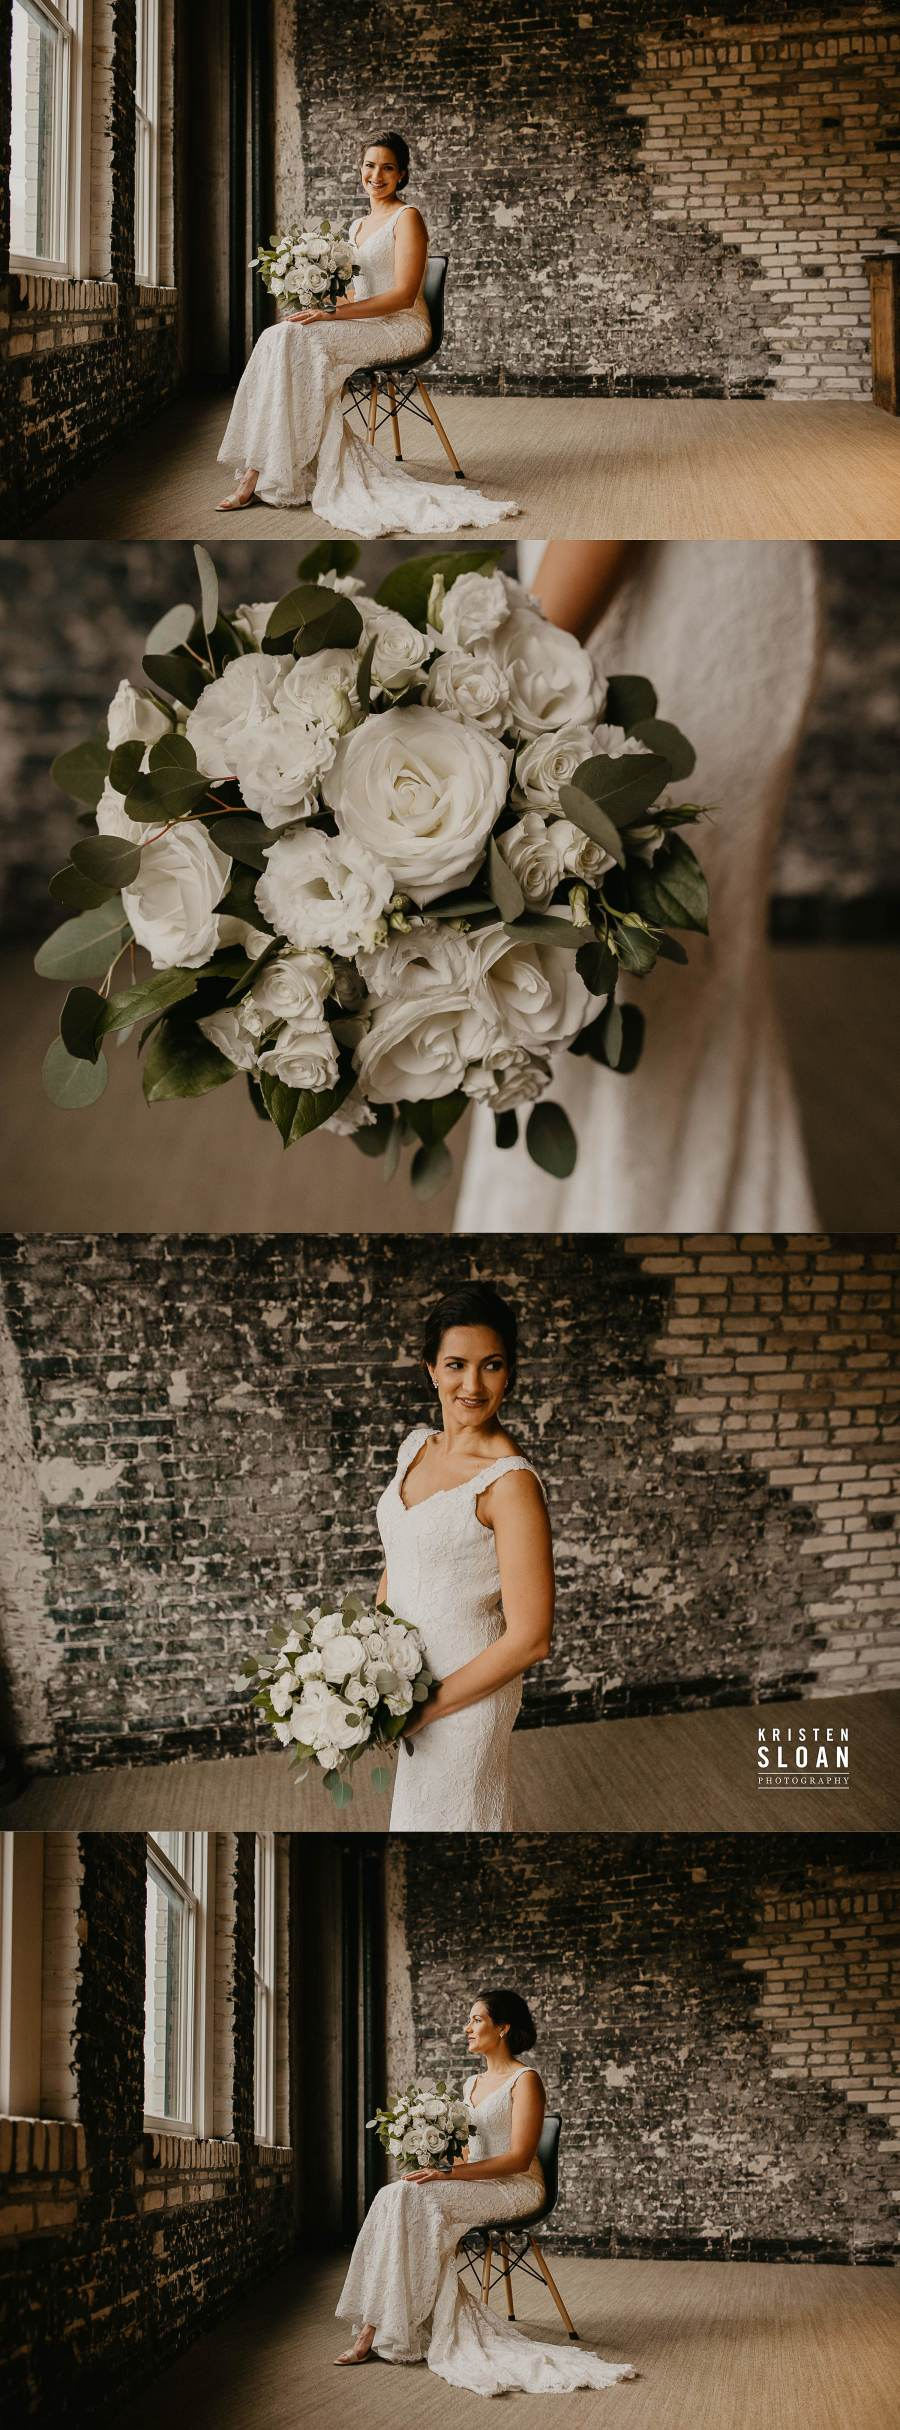 Oxford Exchange Tampa Wedding |Tampa Wedding Photographer Kristen Sloan